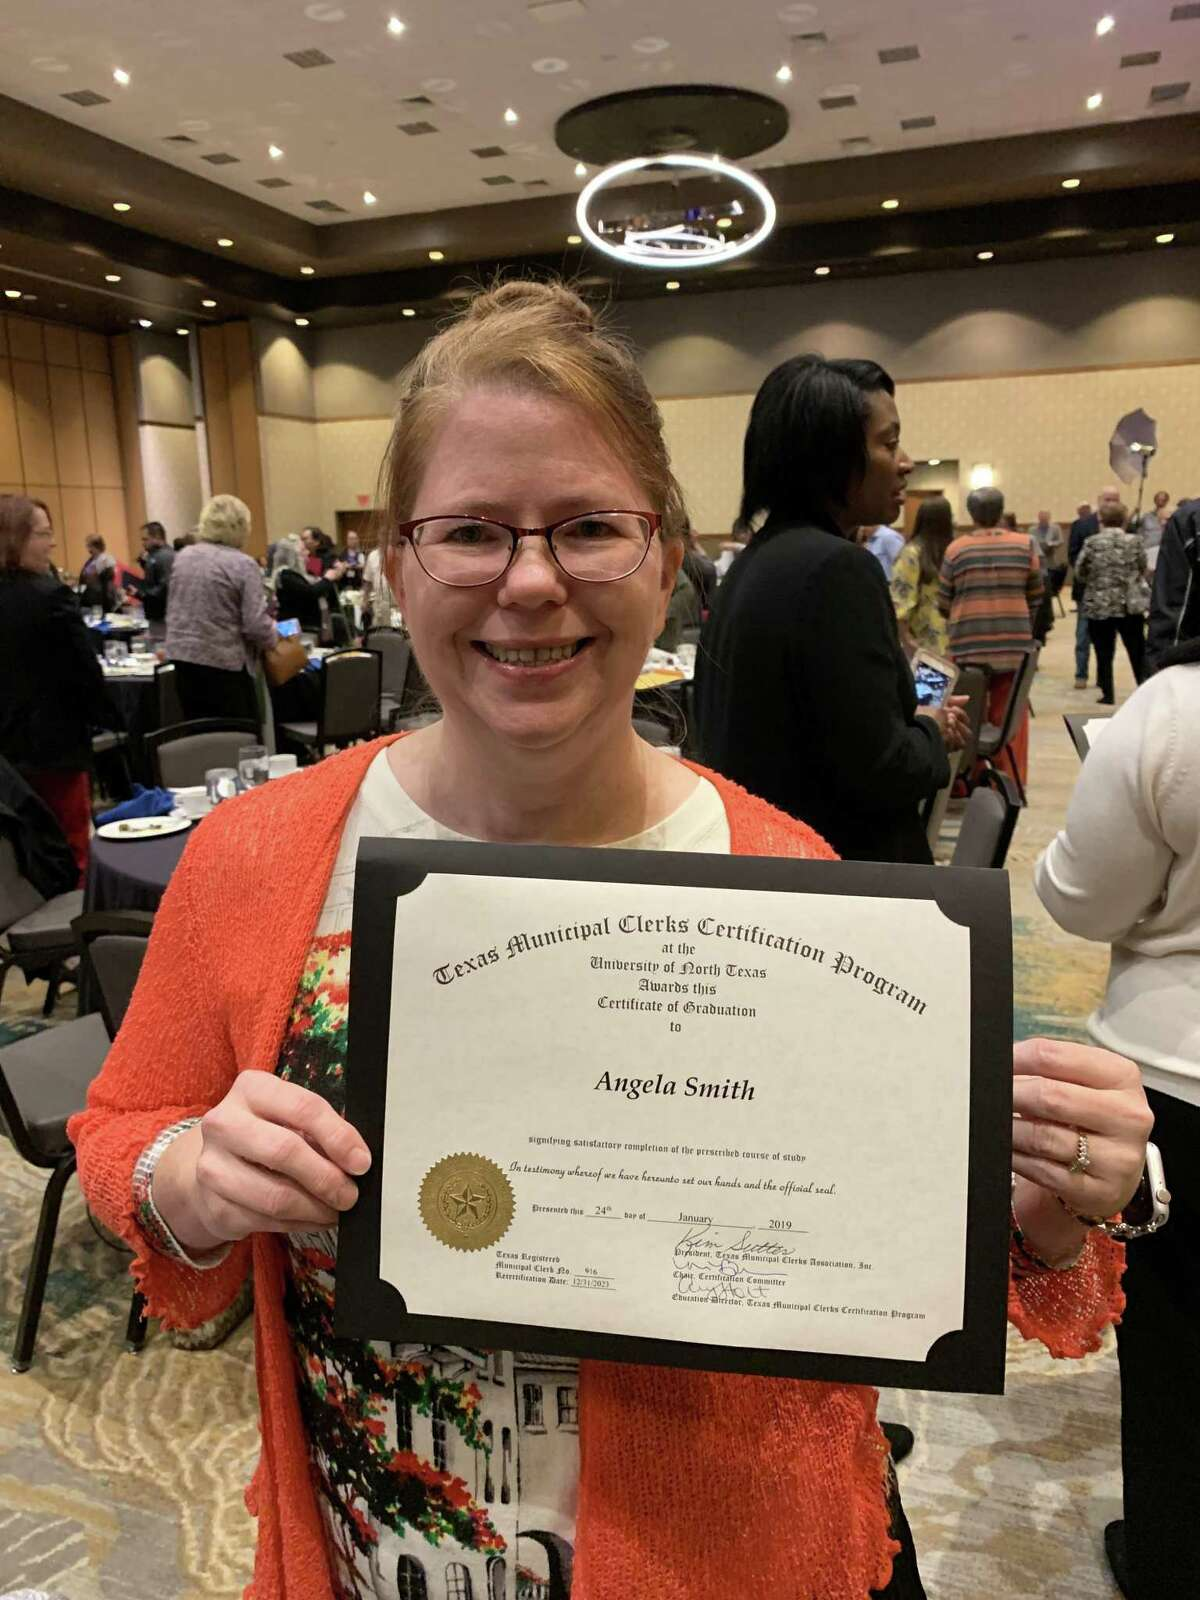 Angela Smith has graduated from the Texas Municipal Clerks Certification Program on January 24.